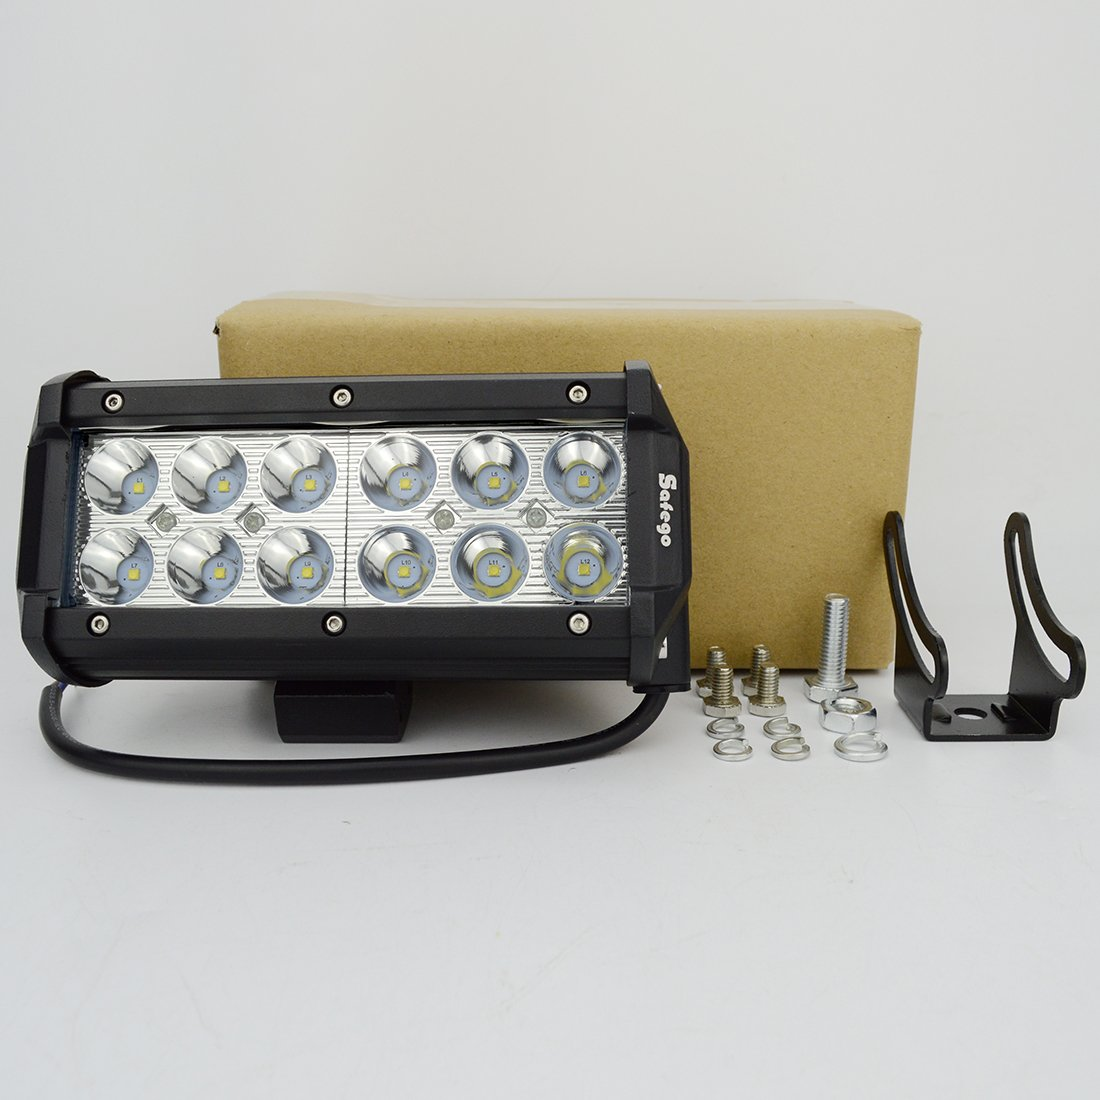 12 LED Work Light Bar SAFEGO 1PCS 180W Spot Beam 13200LM Super Bright 6500K for Off-road Car Truck Tractor Jeep Boat Driving Lamp 12V 24V Waterproof IP67